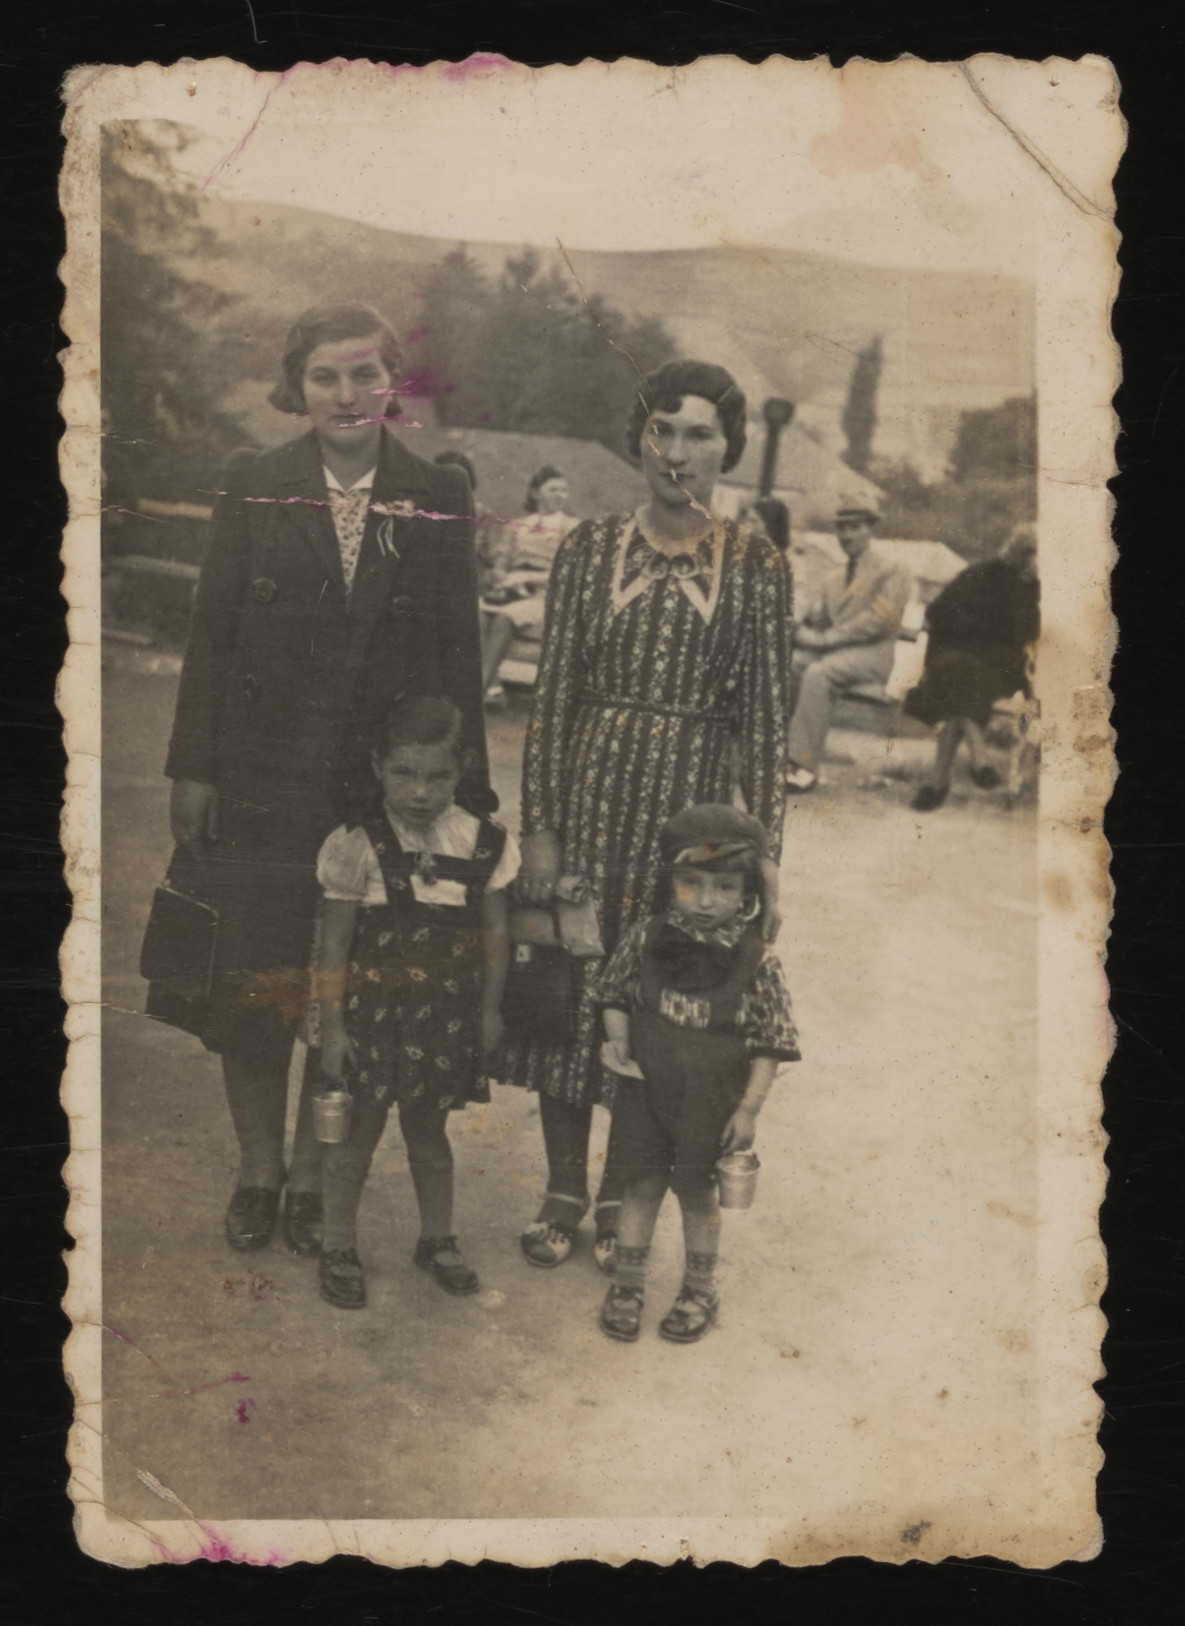 Two Romanian Jewish sisters pose with two young children in a park.  Pictured are Chana Wax, Fany Spitzer, Sara and Nathan Spitzer.